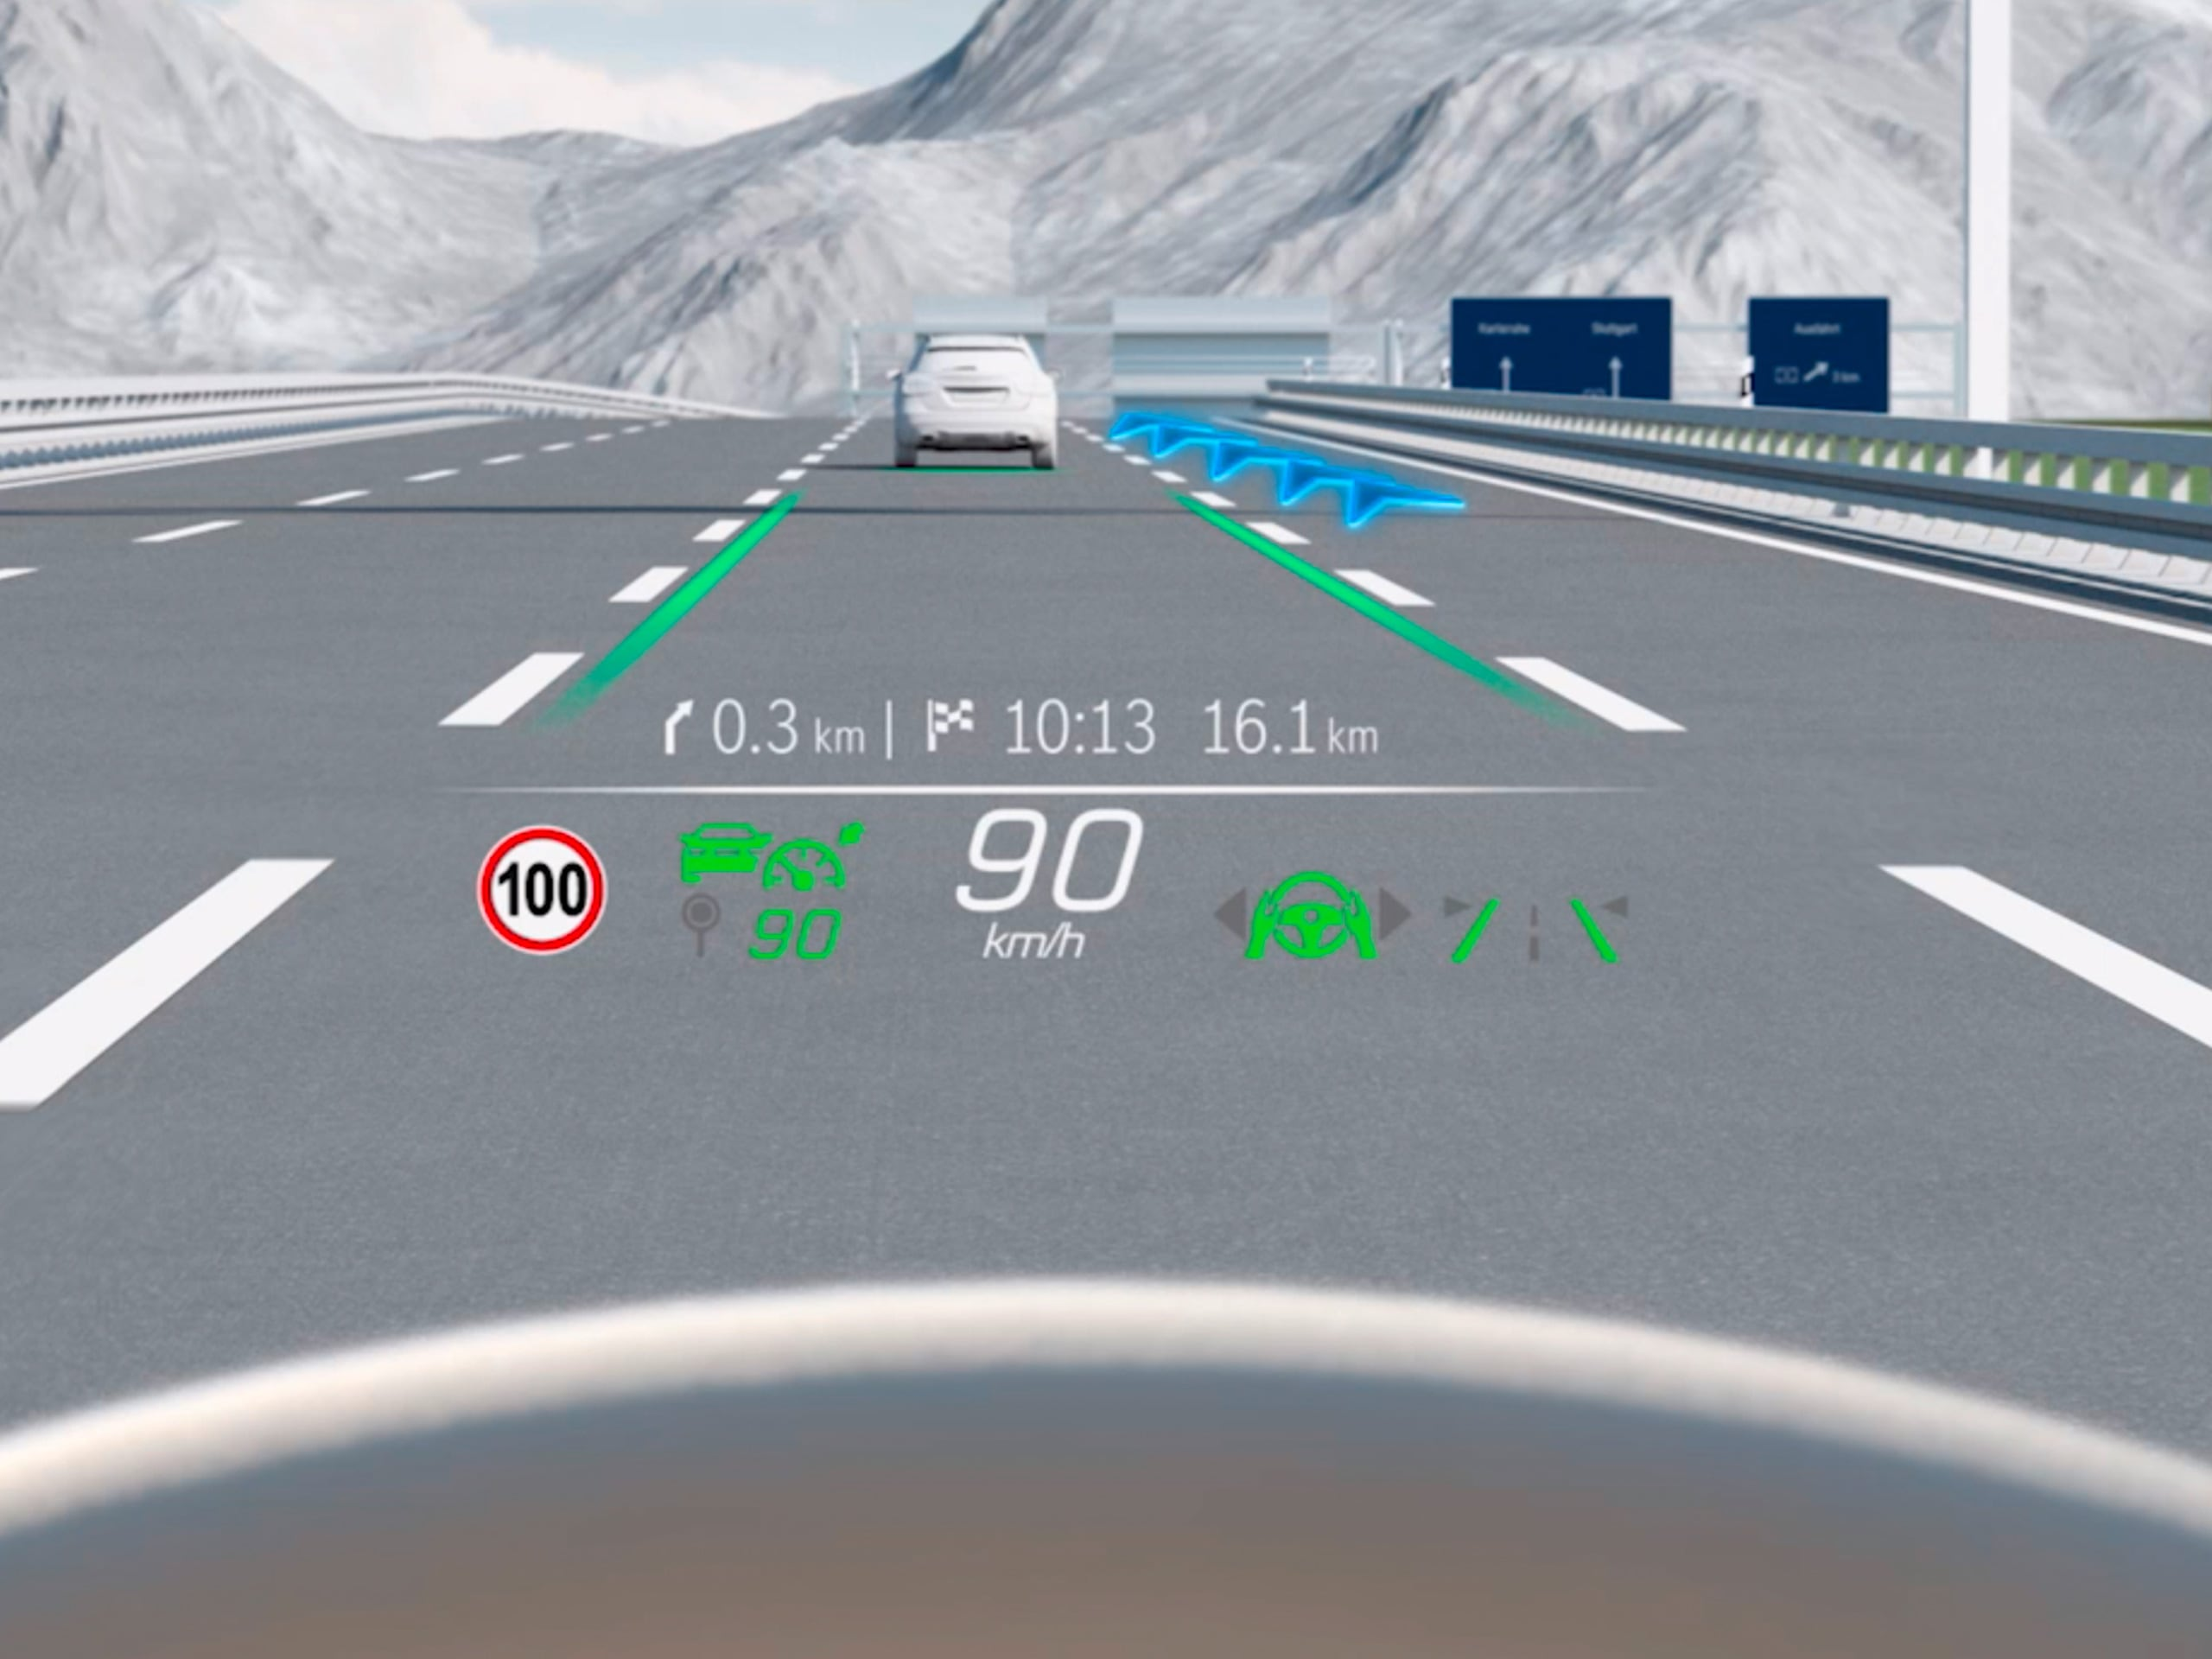 The video shows how the head-up display in the Mercedes-Benz C-Class Saloon works.